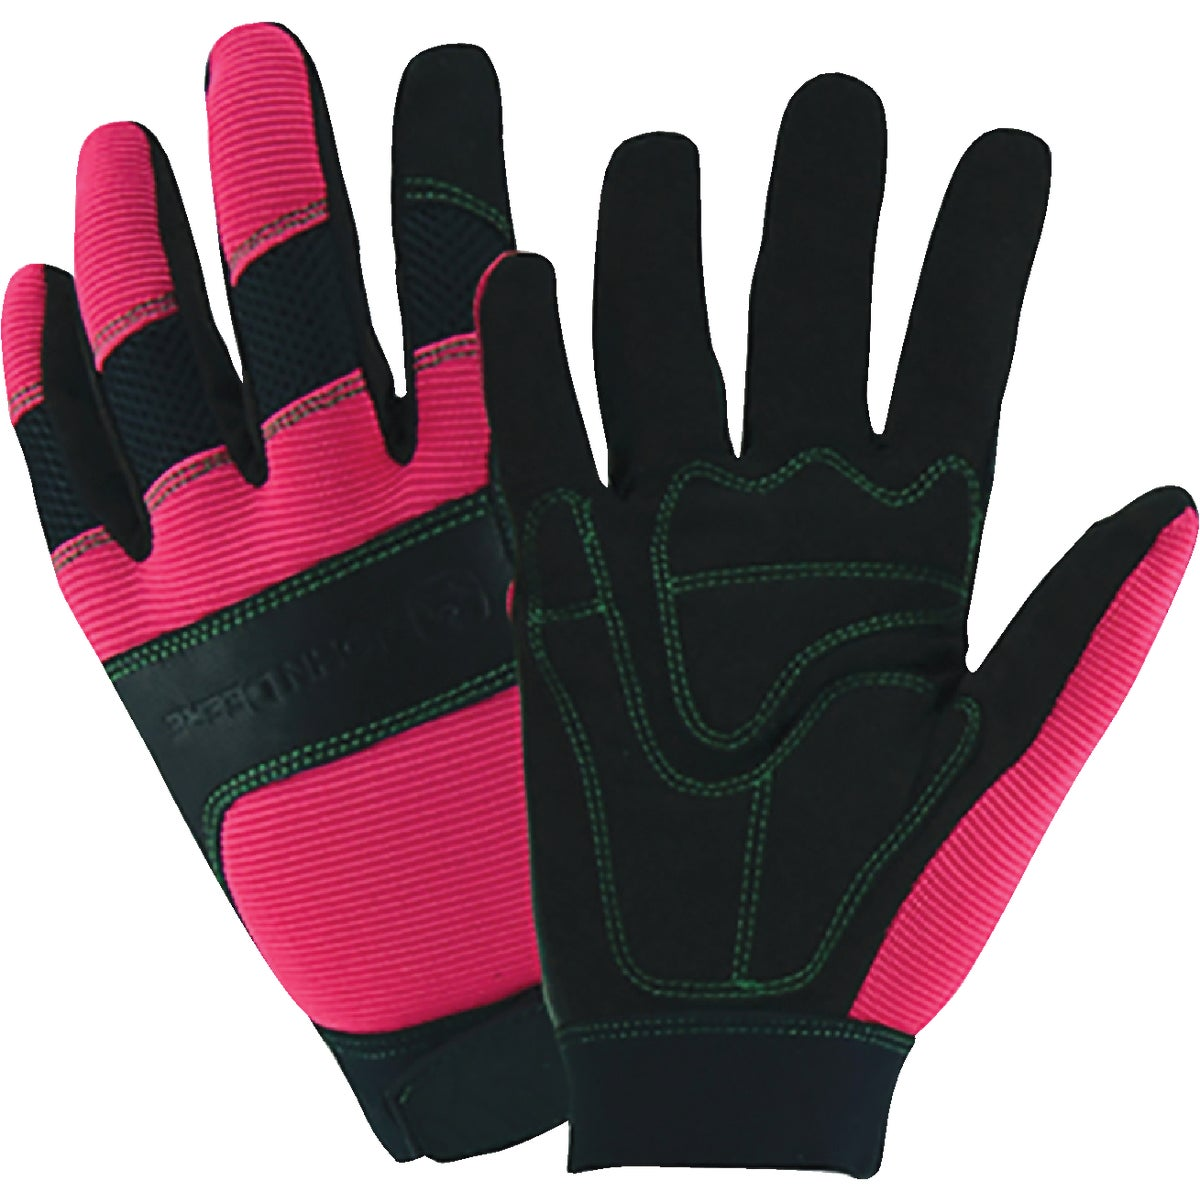 LINED ALL PURPOSE GLOVE - JD90015/WML by West Chester Incom